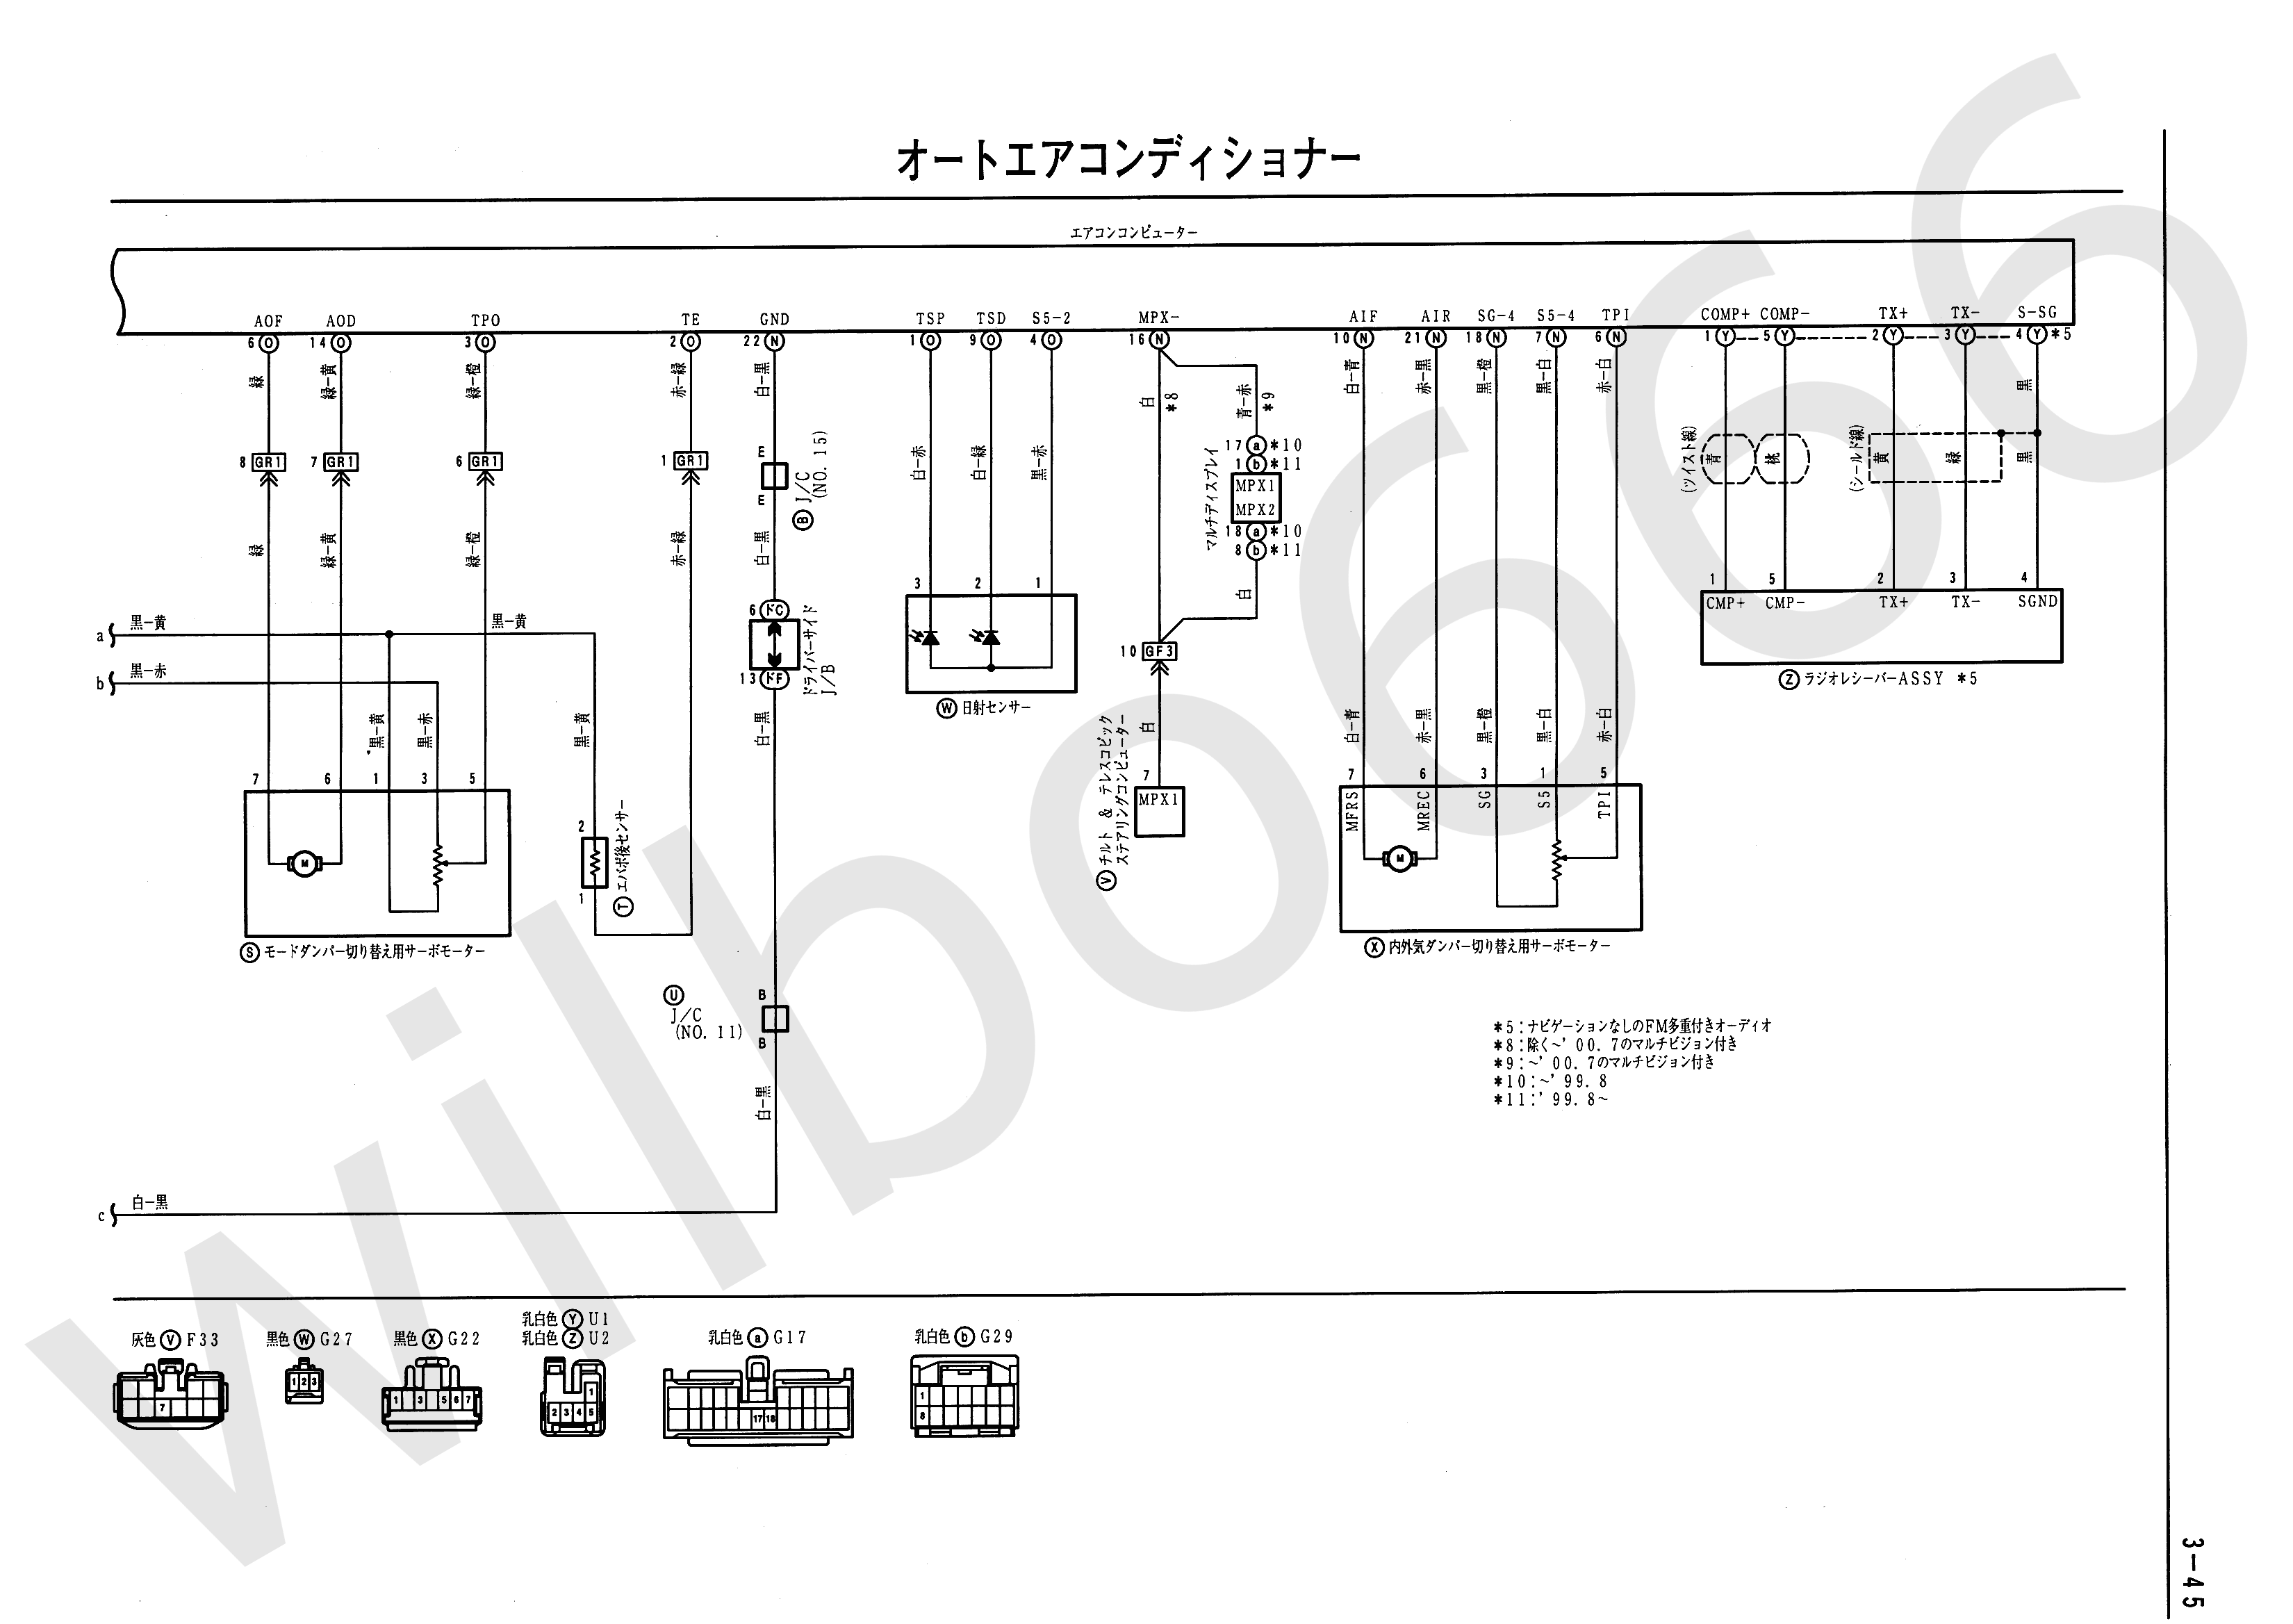 wilbo666 2jz gte vvti jzs161 aristo engine wiring direct injection engine vvt i engine wiring diagram #2